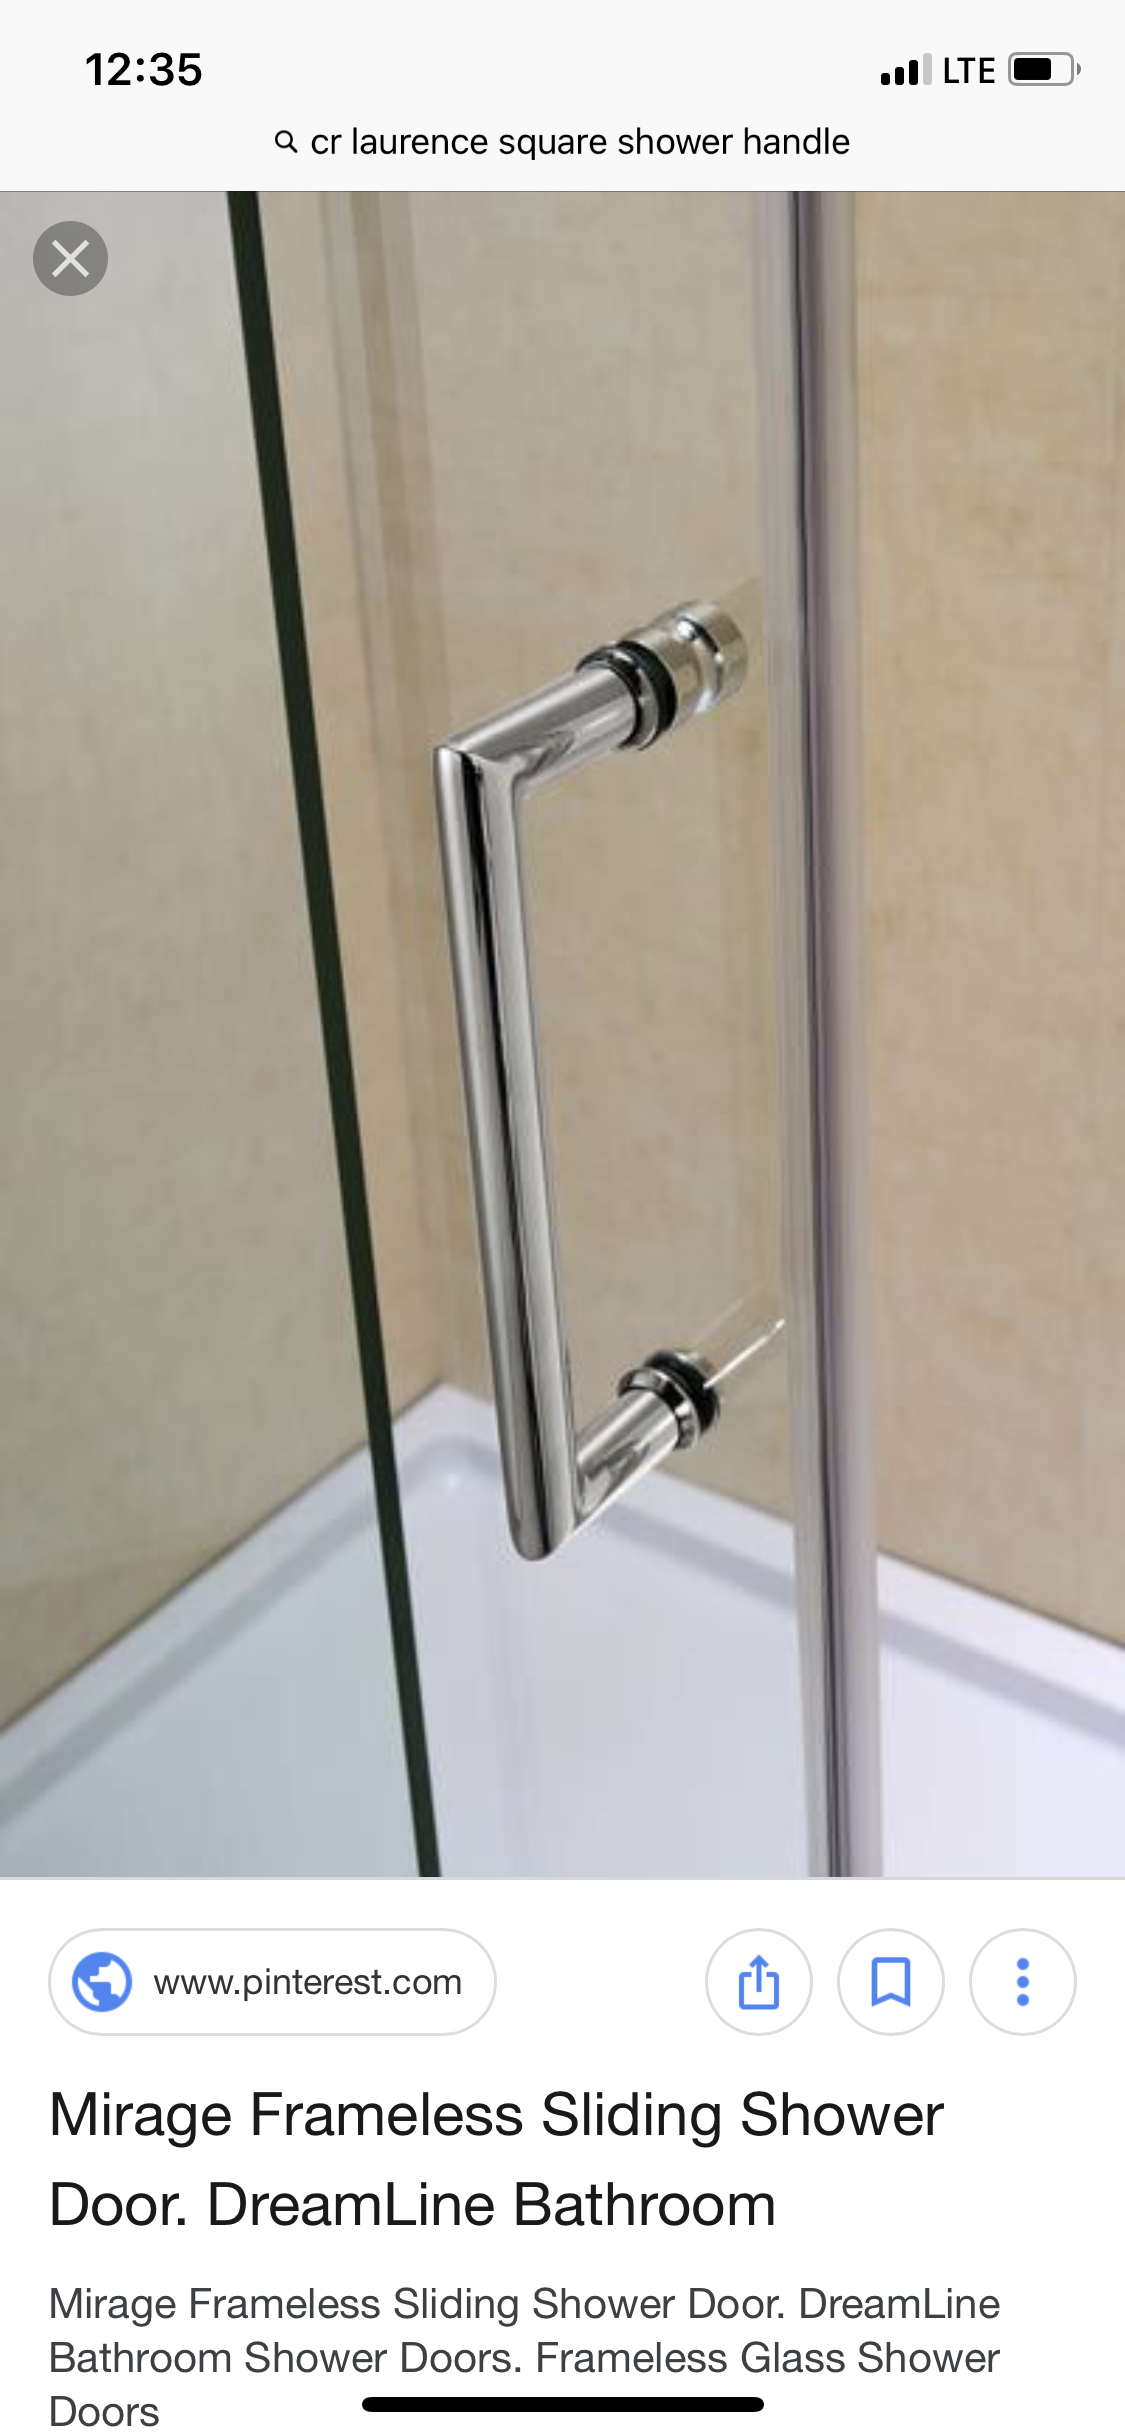 Shower Door Handle Shower Door Handles Glass Shower Doors Glass Shower